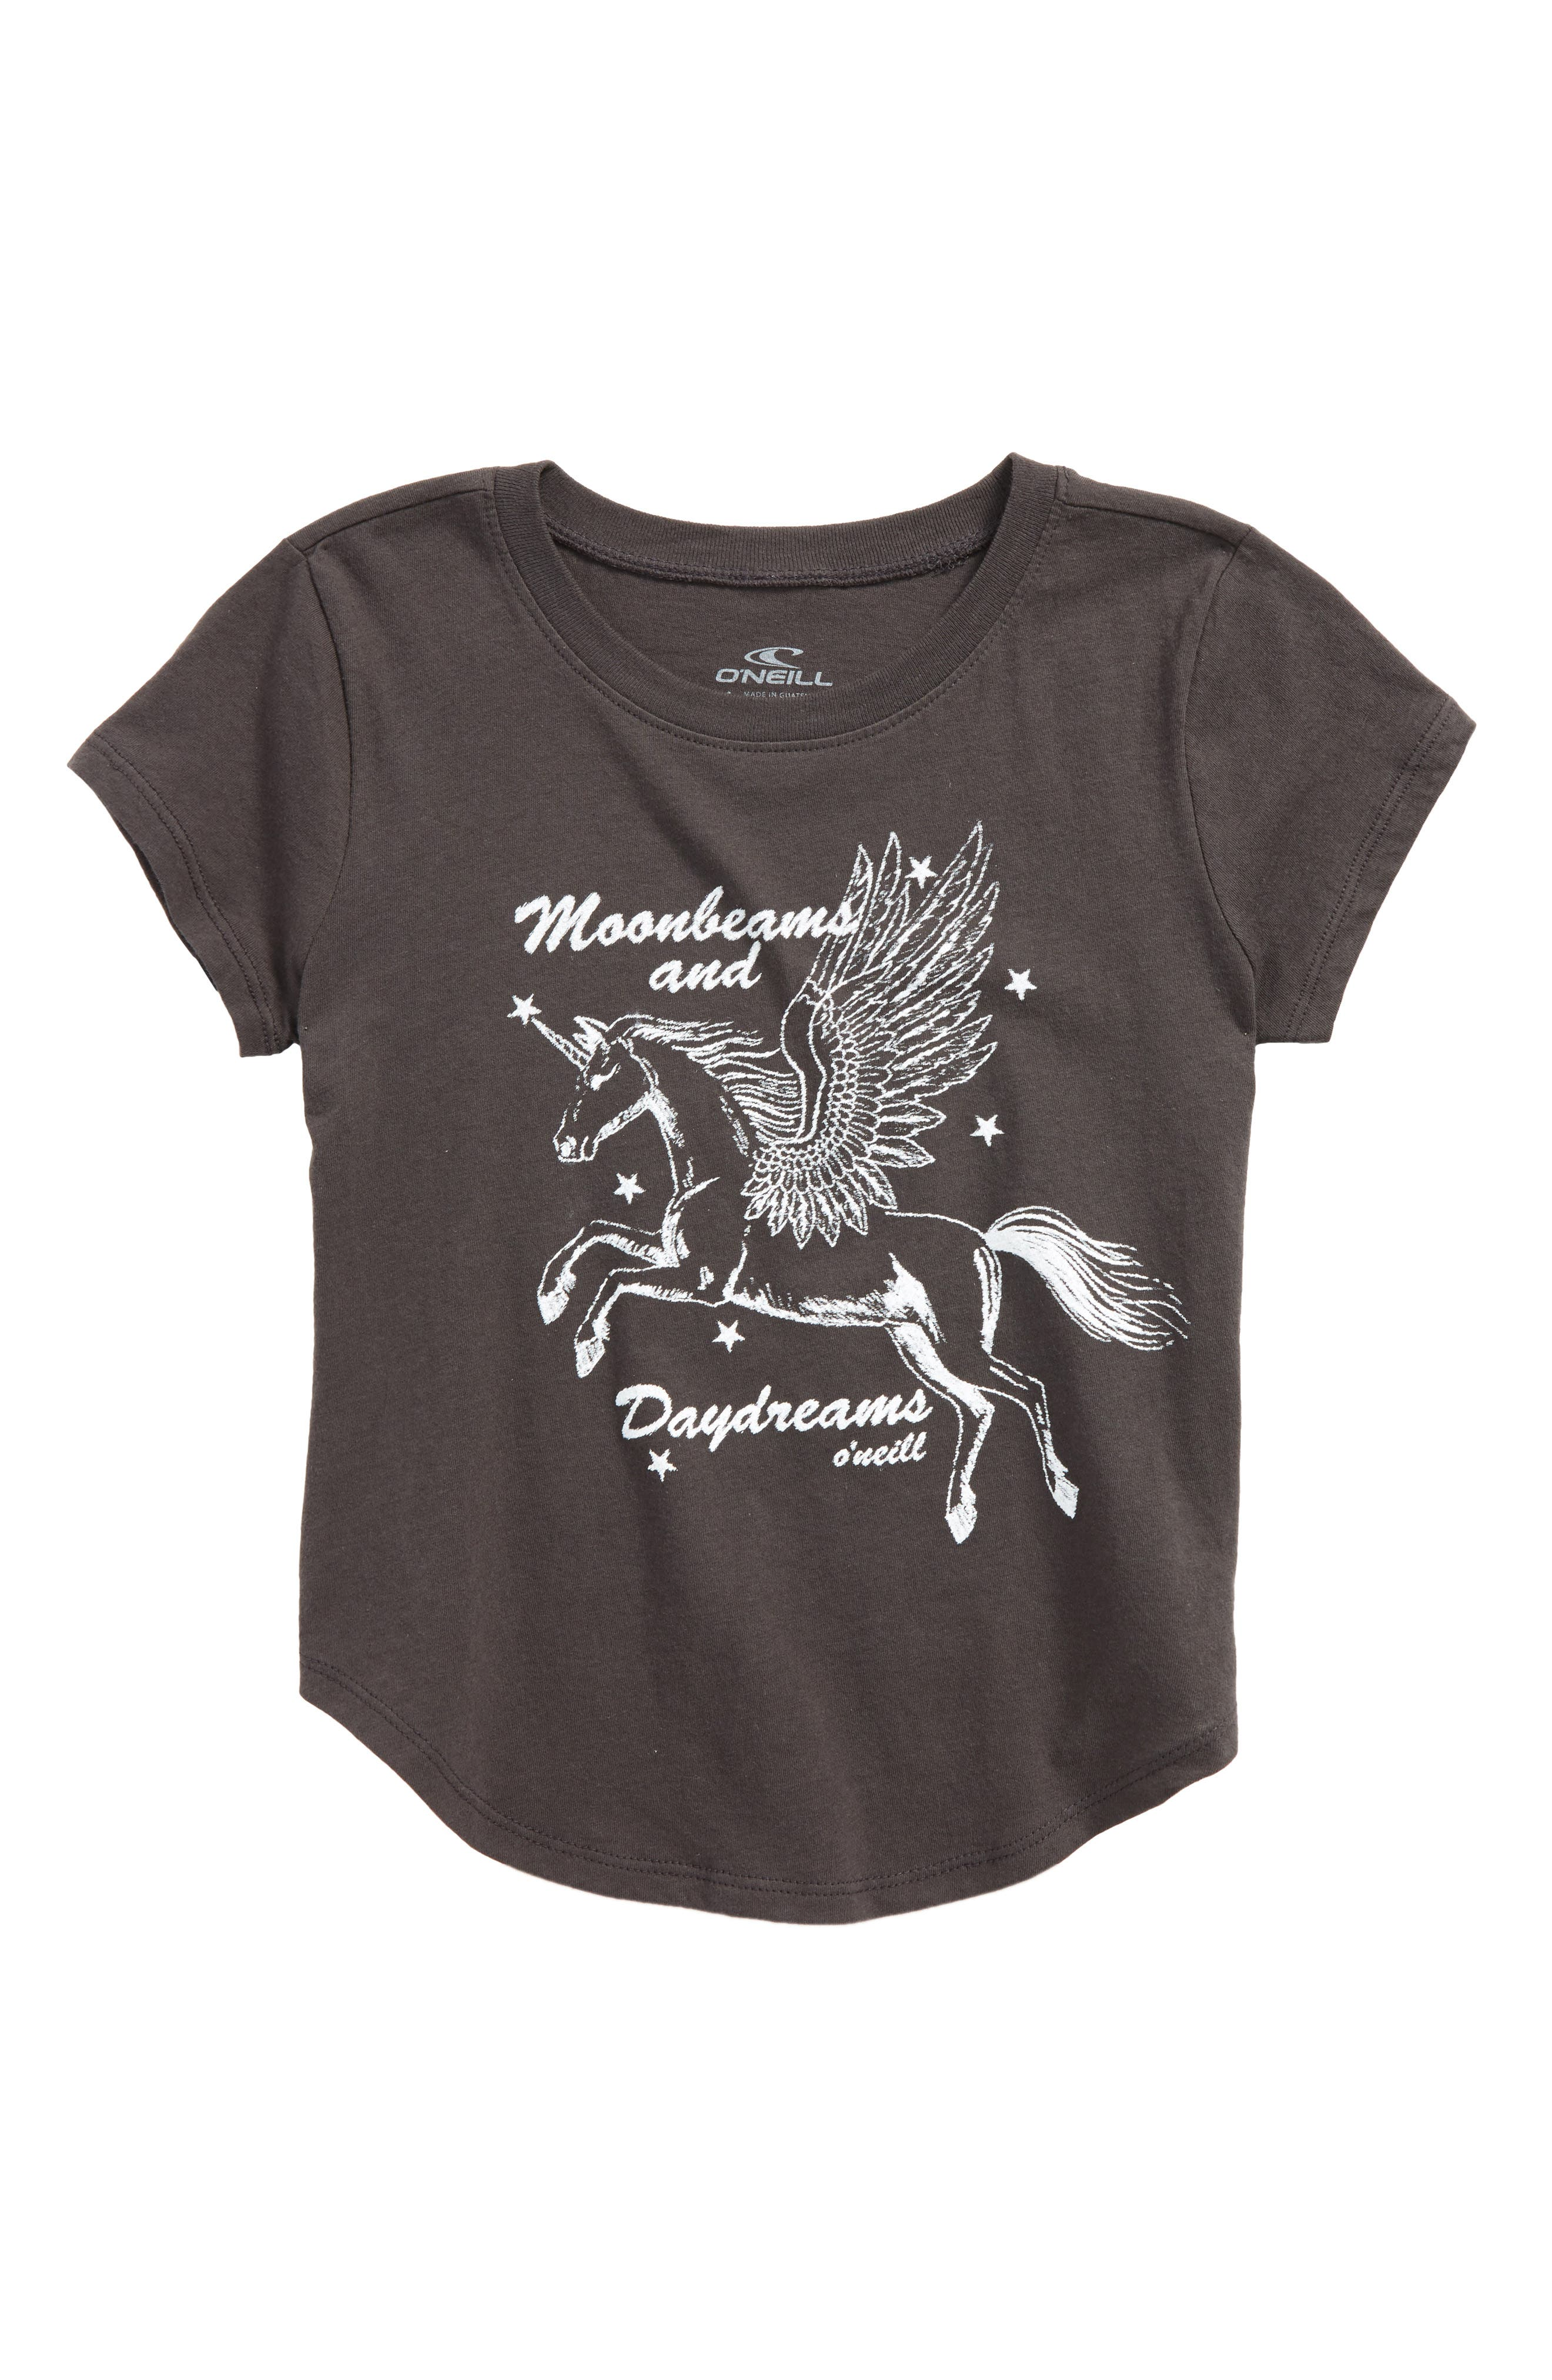 Main Image - O'Neill Moonbeams and Daydreams Graphic Tee (Toddler Girls & Little Girls)